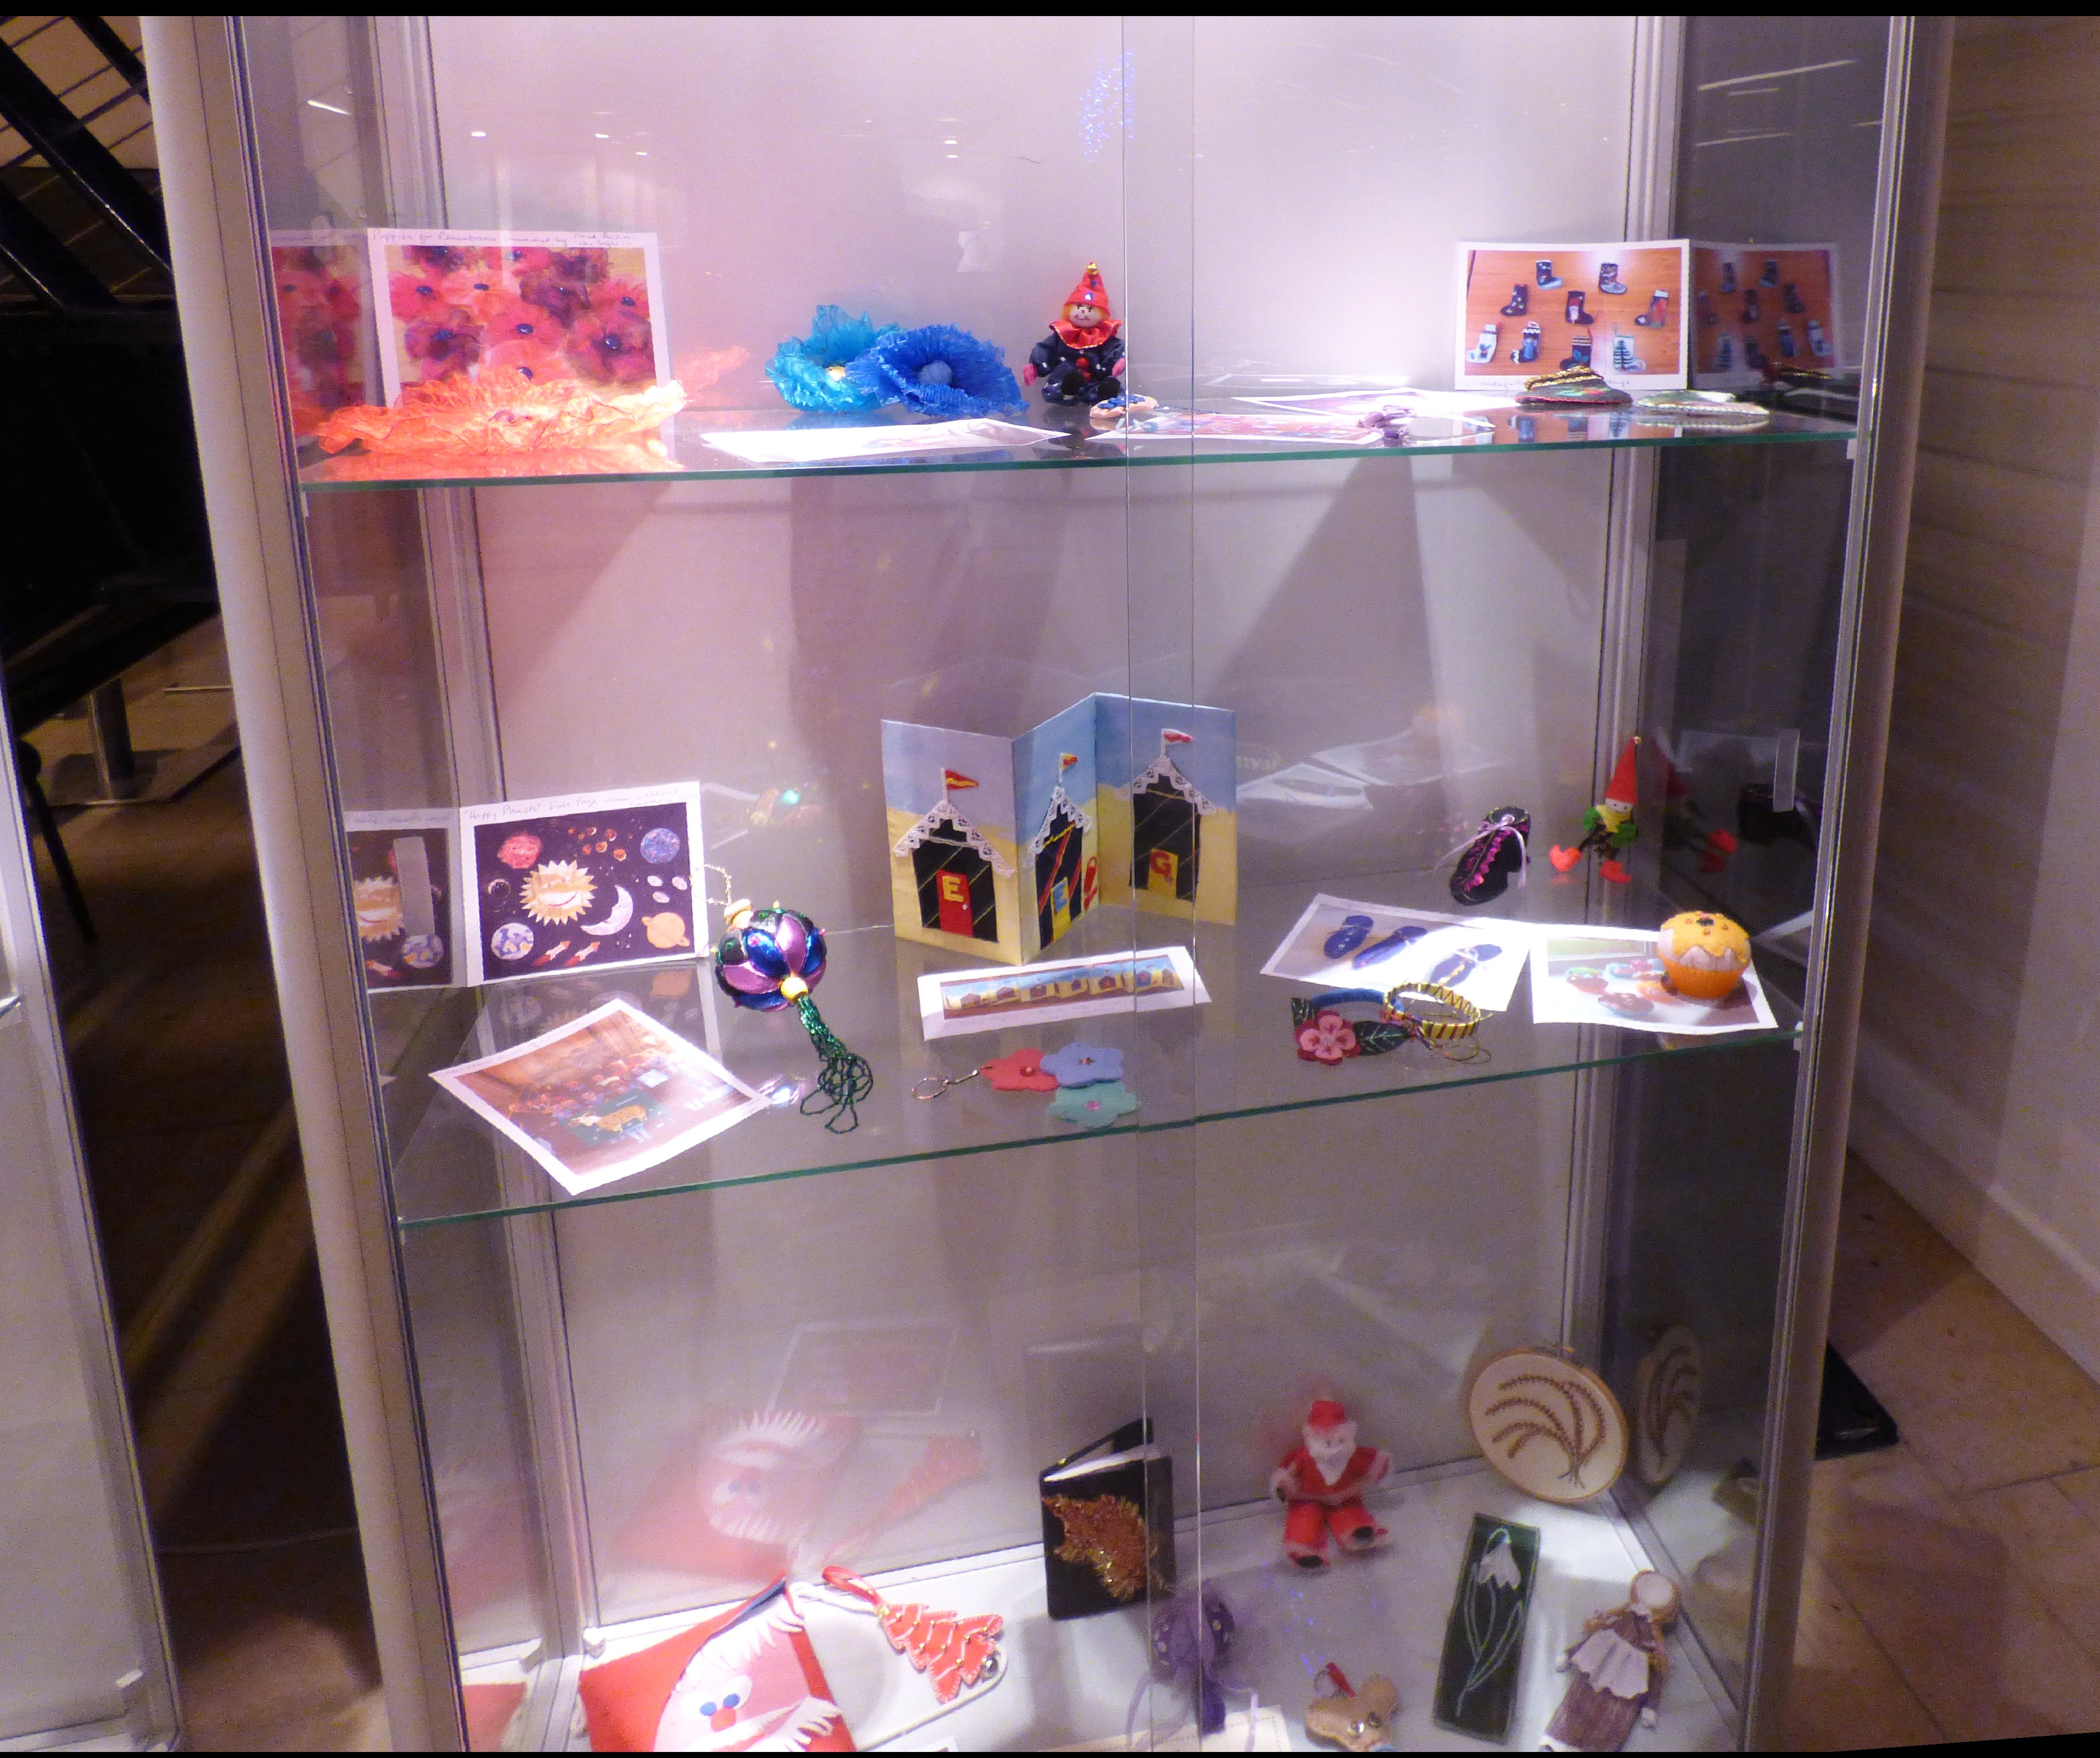 Young Embroiderers' work on display at Kaffe Fassett Lecture, Capstone Theatre, Dec 2016